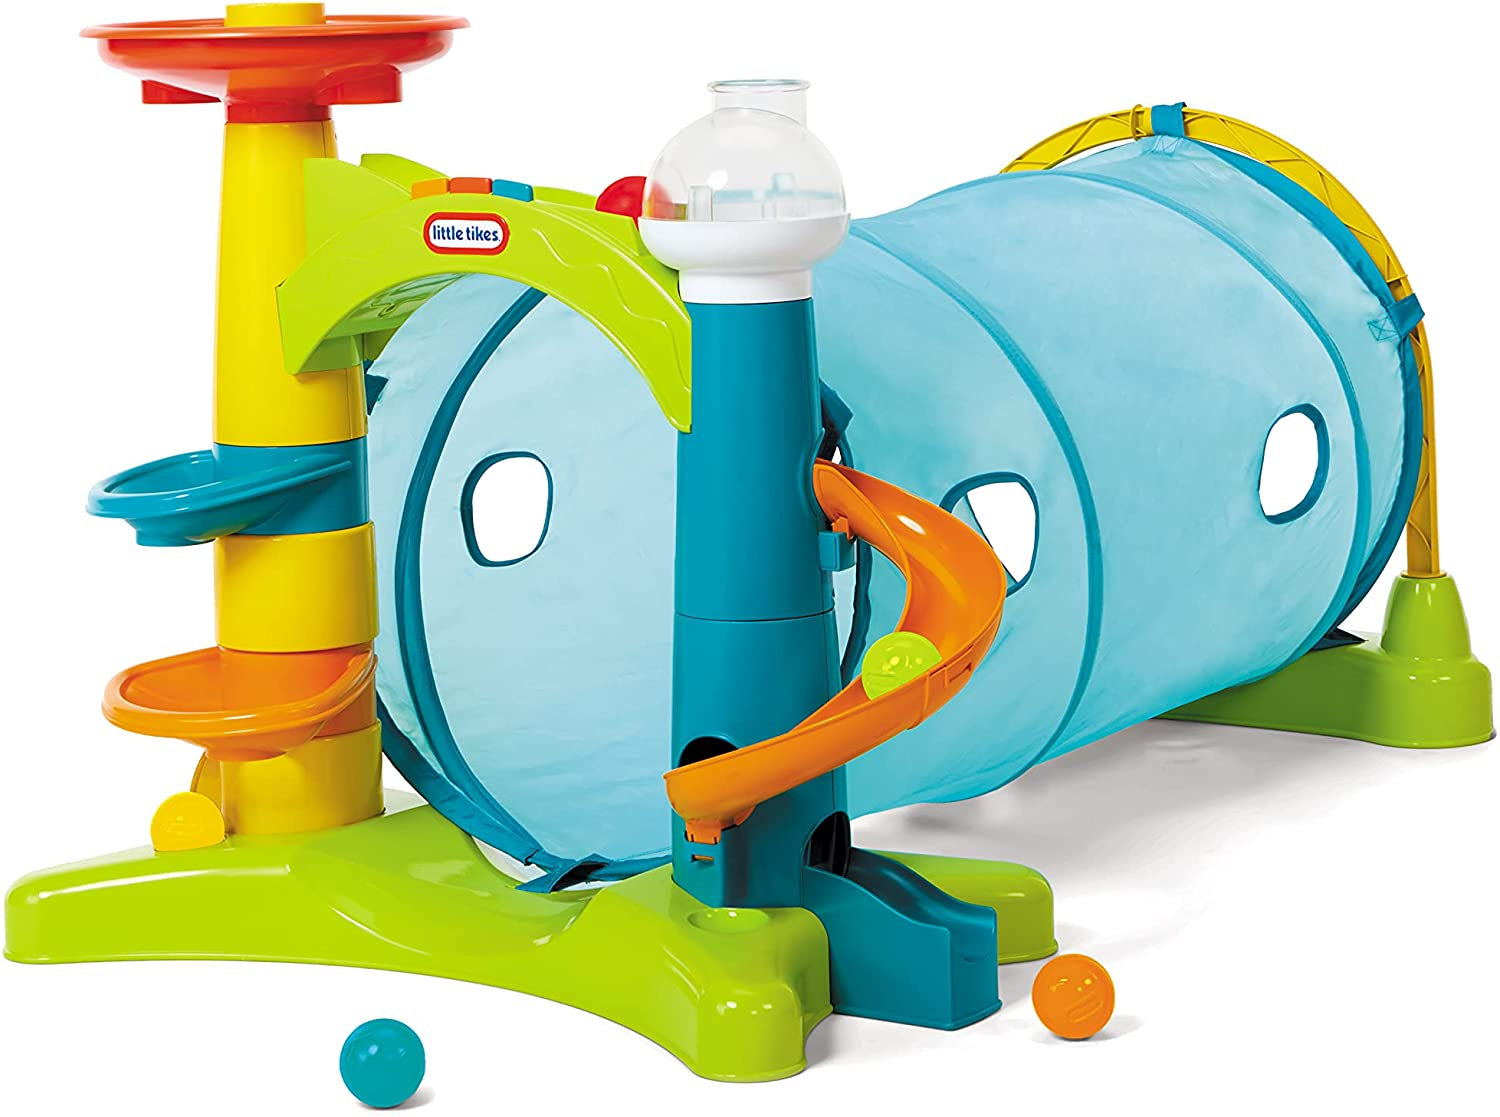 Little Tikes Learn & Play 2-in-1 Activity Tunnel with Ball Drop, Windows, Silly Sounds, and Music for Kids Ages 1 - 3